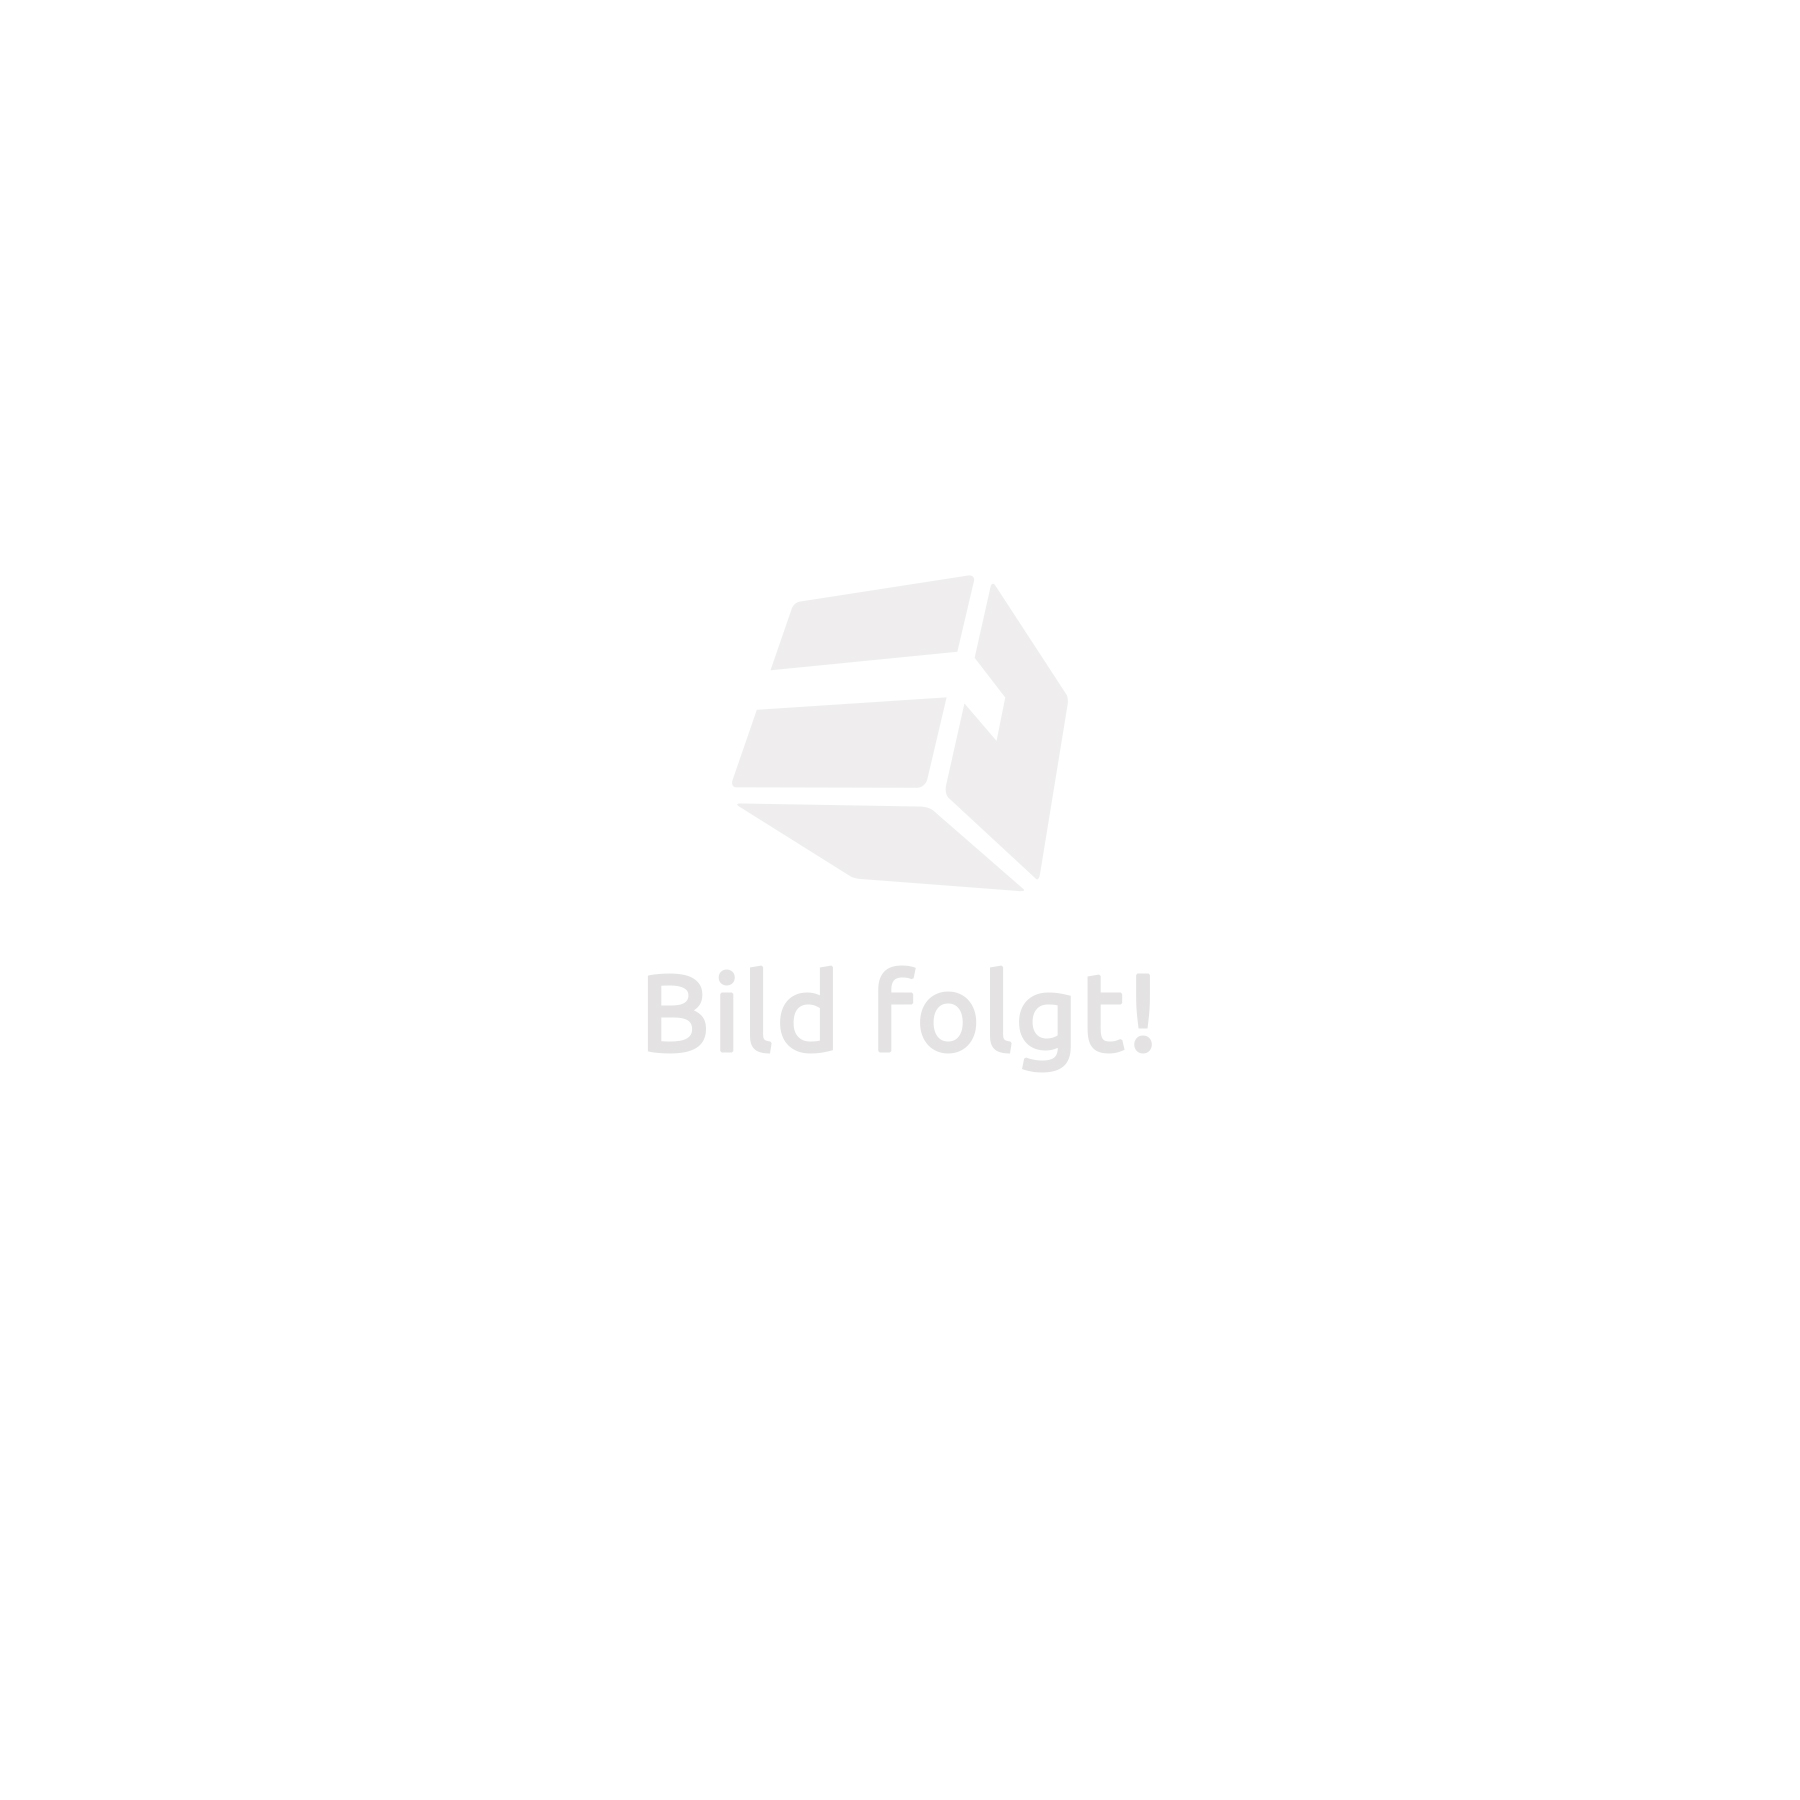 Picture of: Shop Cheap Hanging Chair With Round Frame Rattan Online Tectake